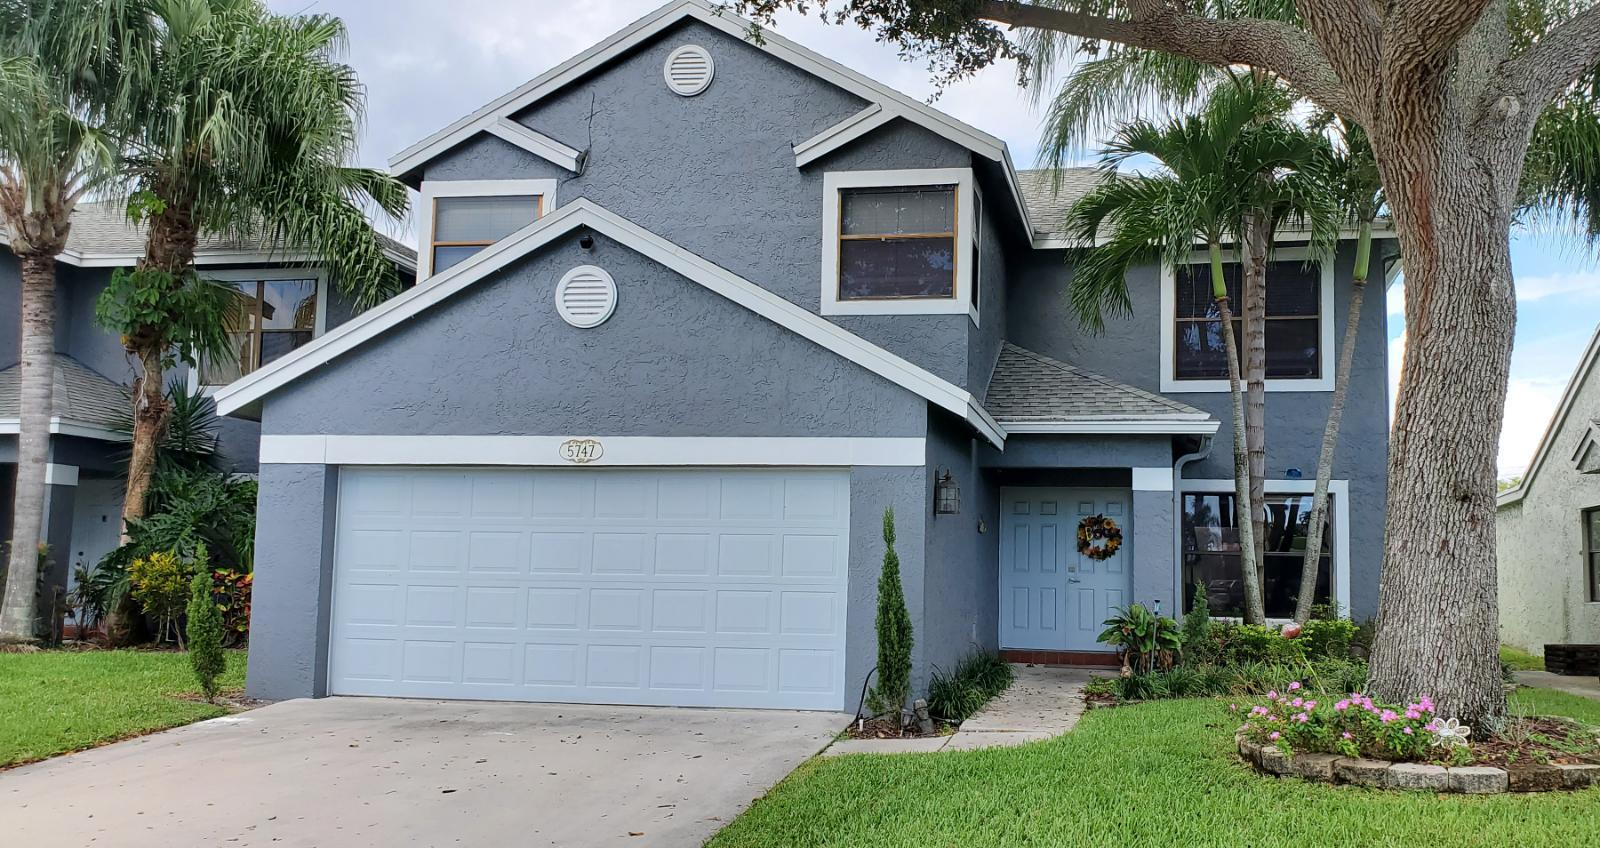 Photo of 5747 Northpointe Lane, Boynton Beach, FL 33437